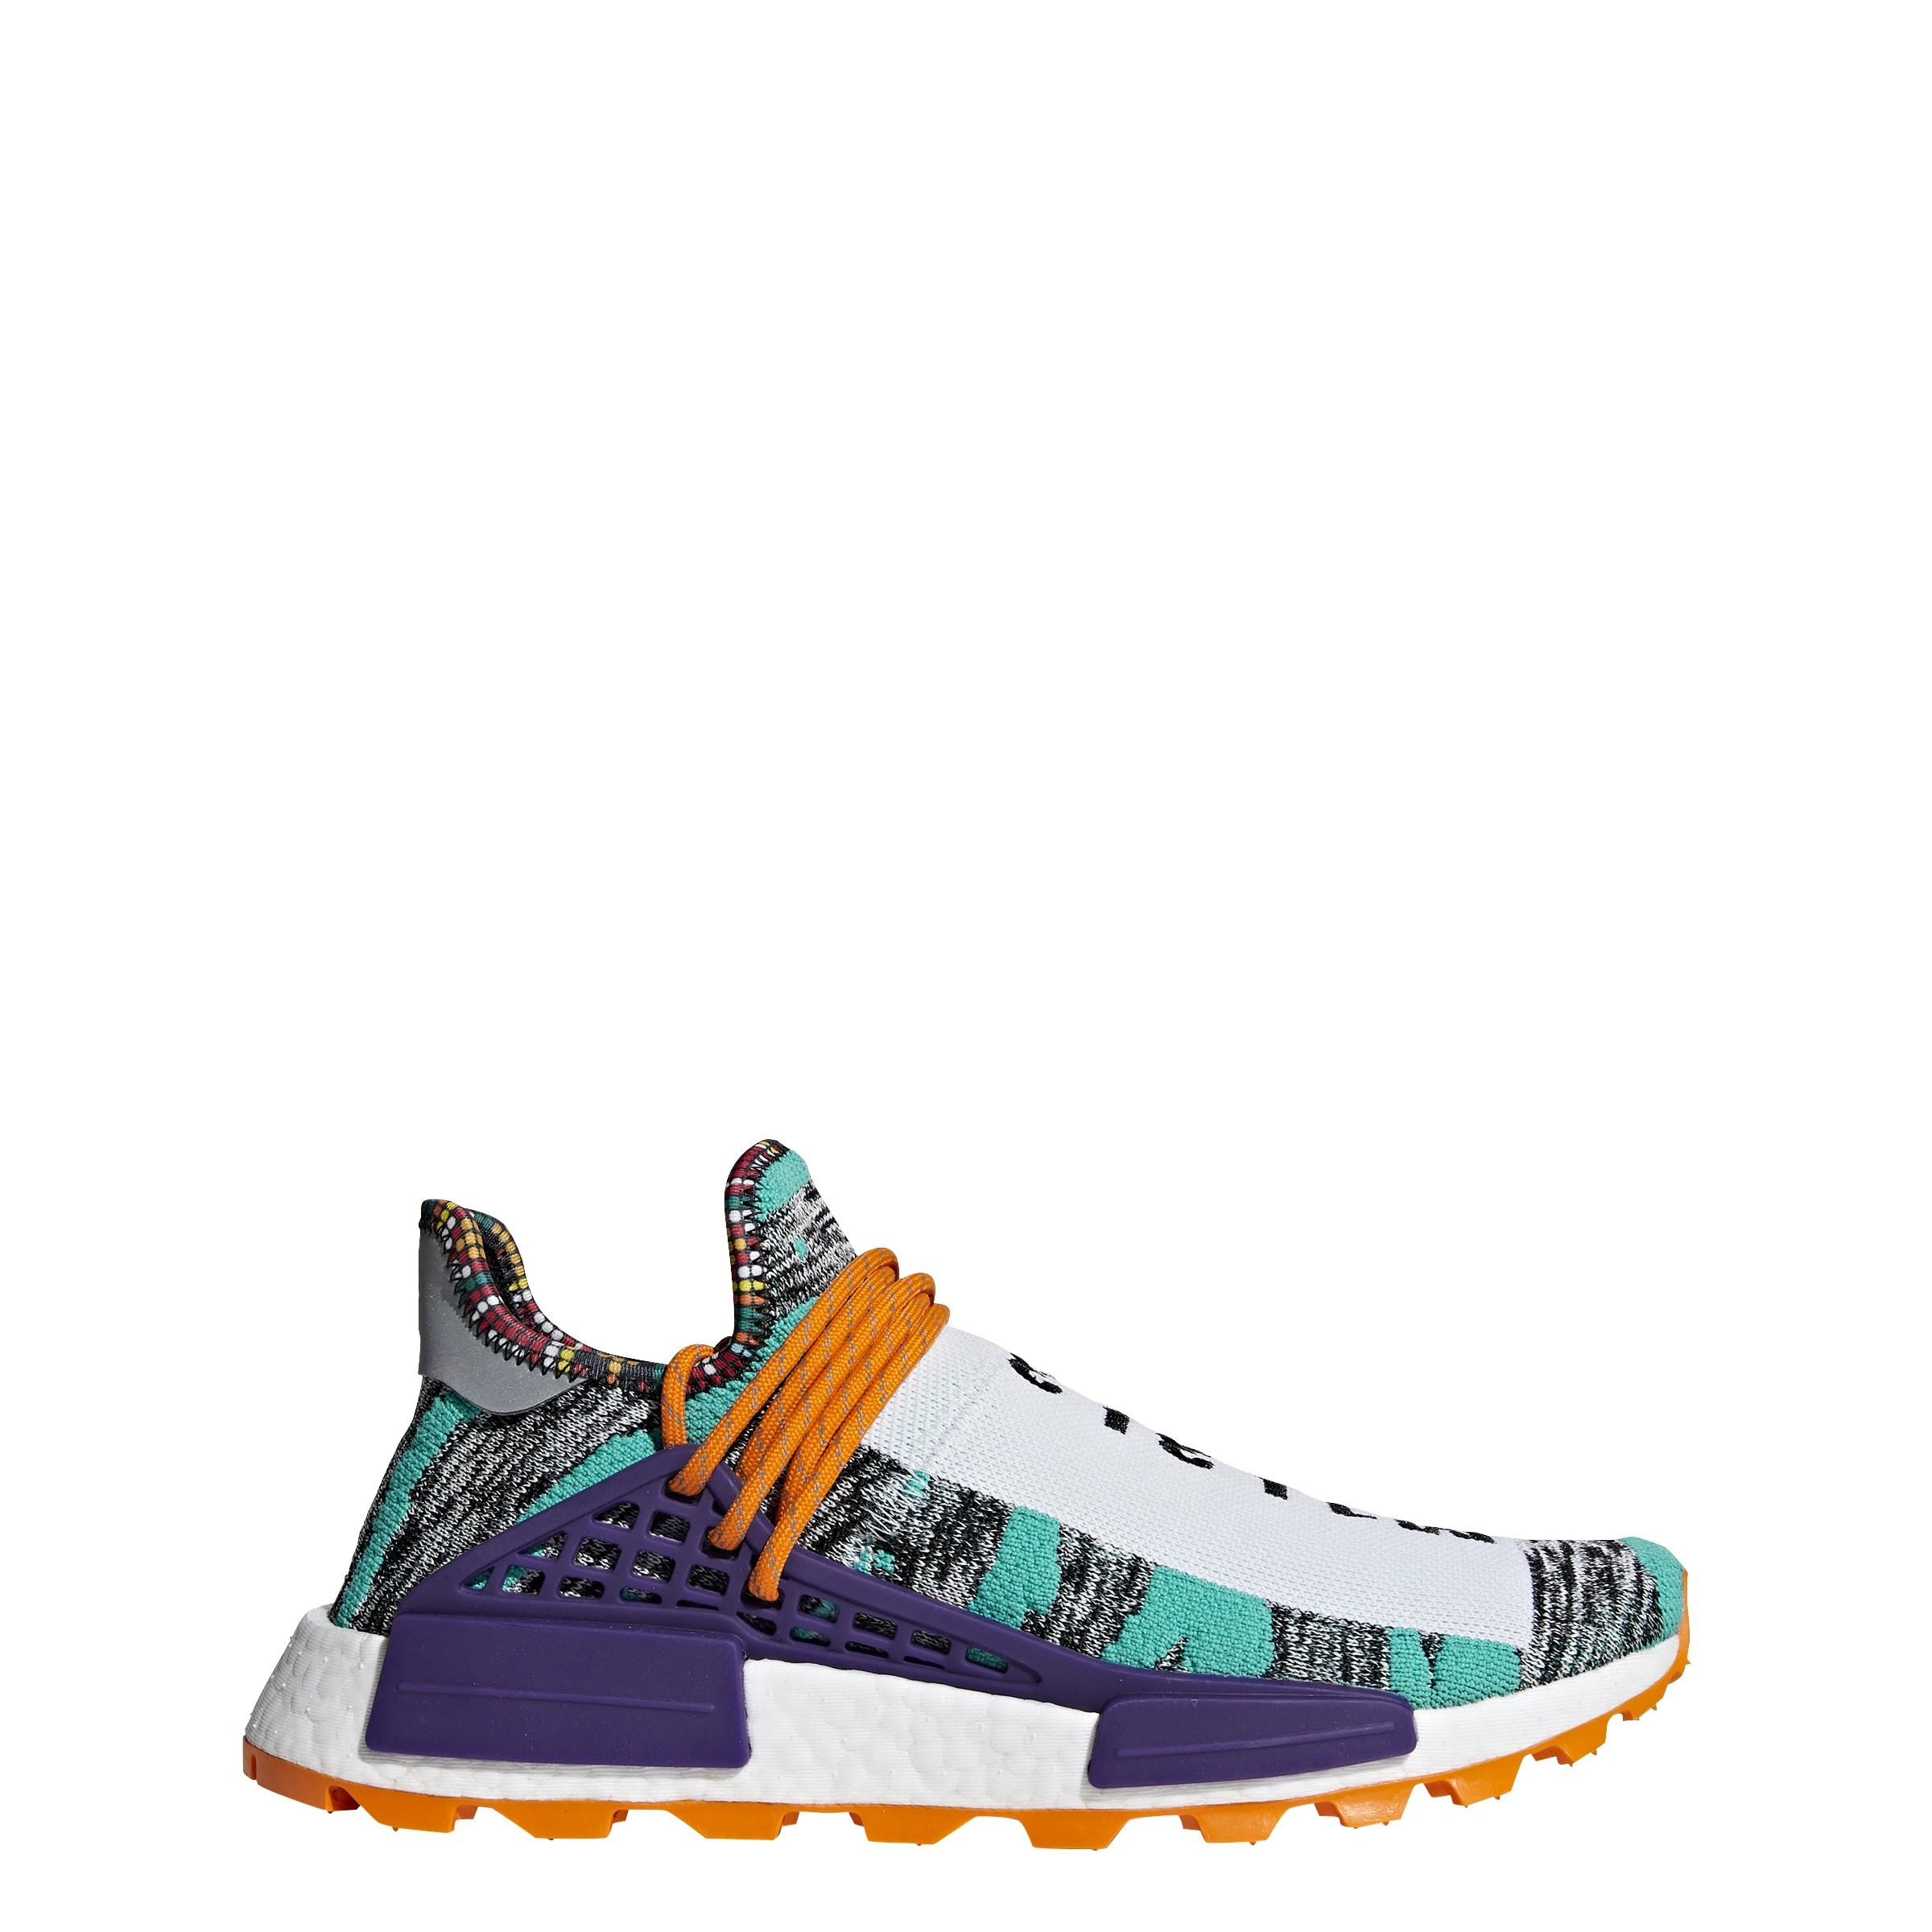 O adidas Originals x Pharrell Williams Afro Hu NMD (Foto: Divulgação)